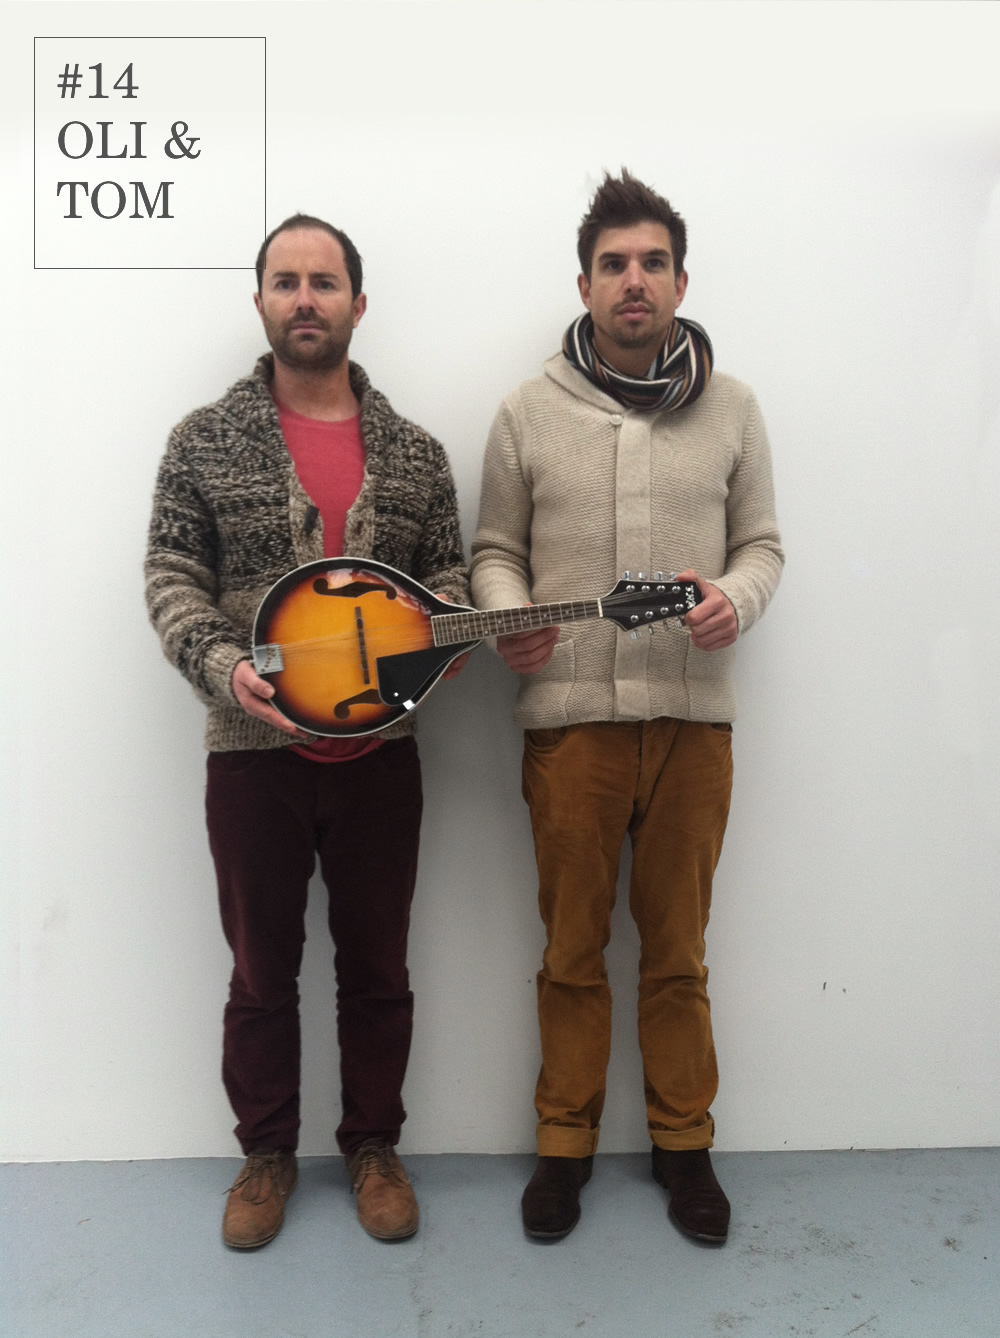 The first double Fash Off honour belongs to Tom and Oli, the comedy duo are so in sync that even their colour palettes are complimentary. In what looks like it could be the test shot for their debut album of folk songs, they layer clothing for a cosy and casual look perfect for the cold weather. We expect to hear their demo any day now…  Oli  Thick knit :Zara  Red trousers :Zara  Red t-shirt : River Island  Stubble: Locally sourced Tom Top: Reiss  Trousers: Zara  Hair: Bed